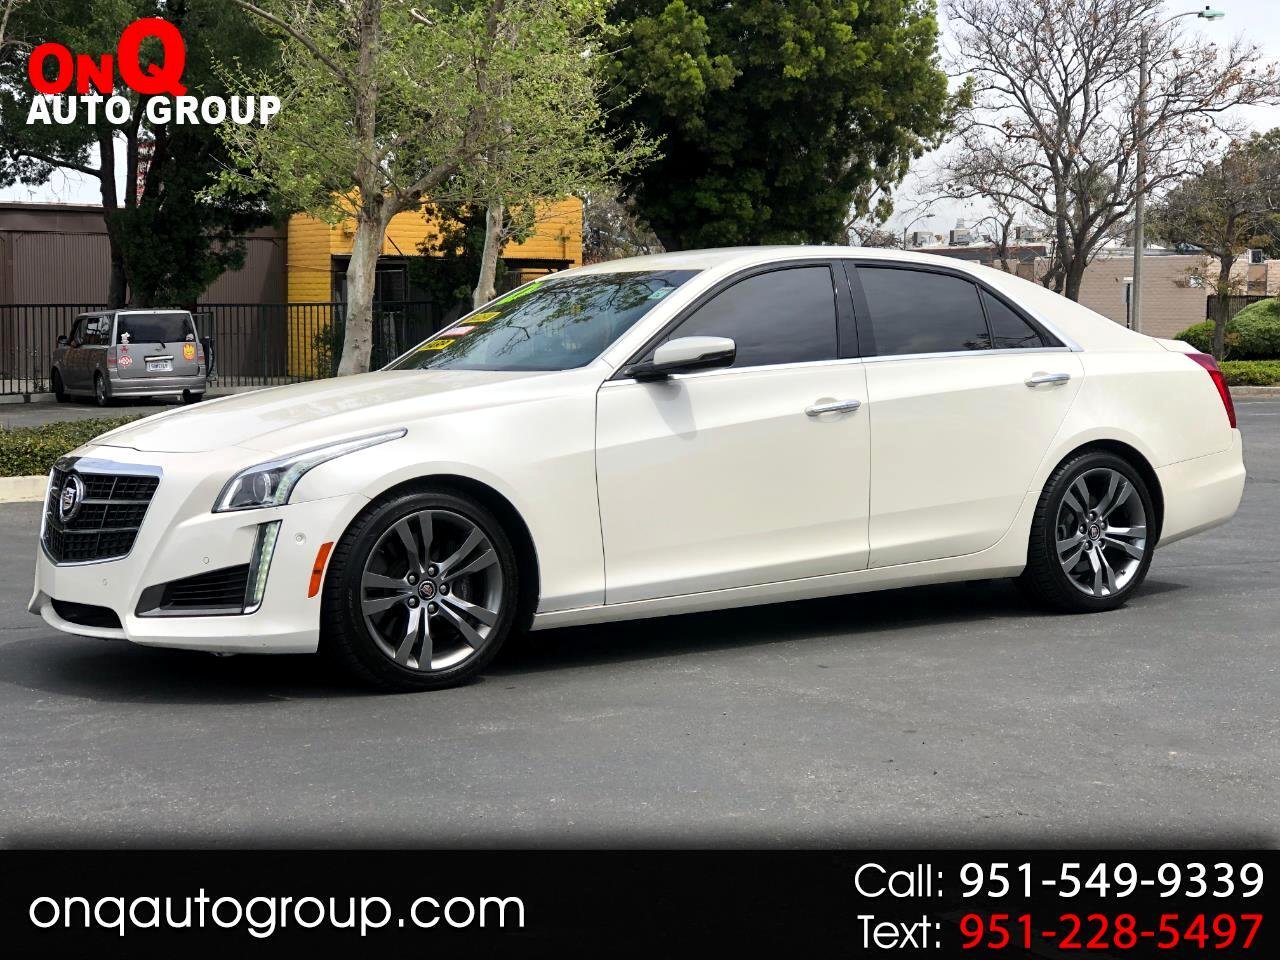 2014 Cadillac CTS Sedan 4dr Sdn 3.6L Twin Turbo Vsport RWD